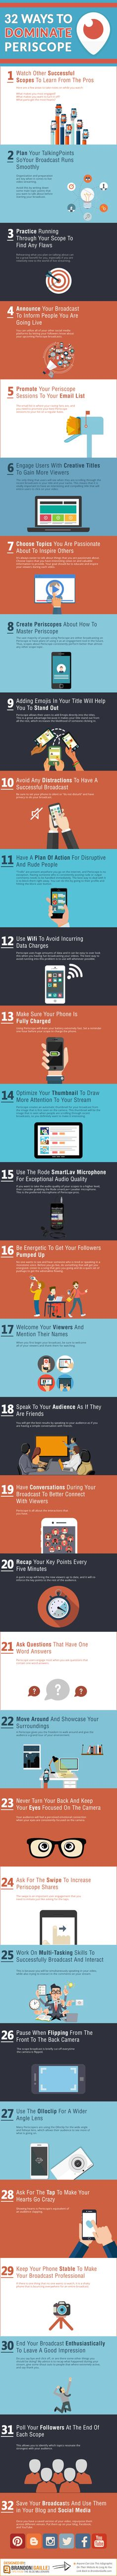 Periscope is the ultimate way to engage your audience, and these 33 tips from the pros will make you an overnight success. The most vital thing is. >>> Continue with the details at the image link. Internet Marketing, Online Marketing, Social Media Marketing, Marketing Ideas, Four Square, Comunity Manager, Snapchat, Le Social, Social Media Tips